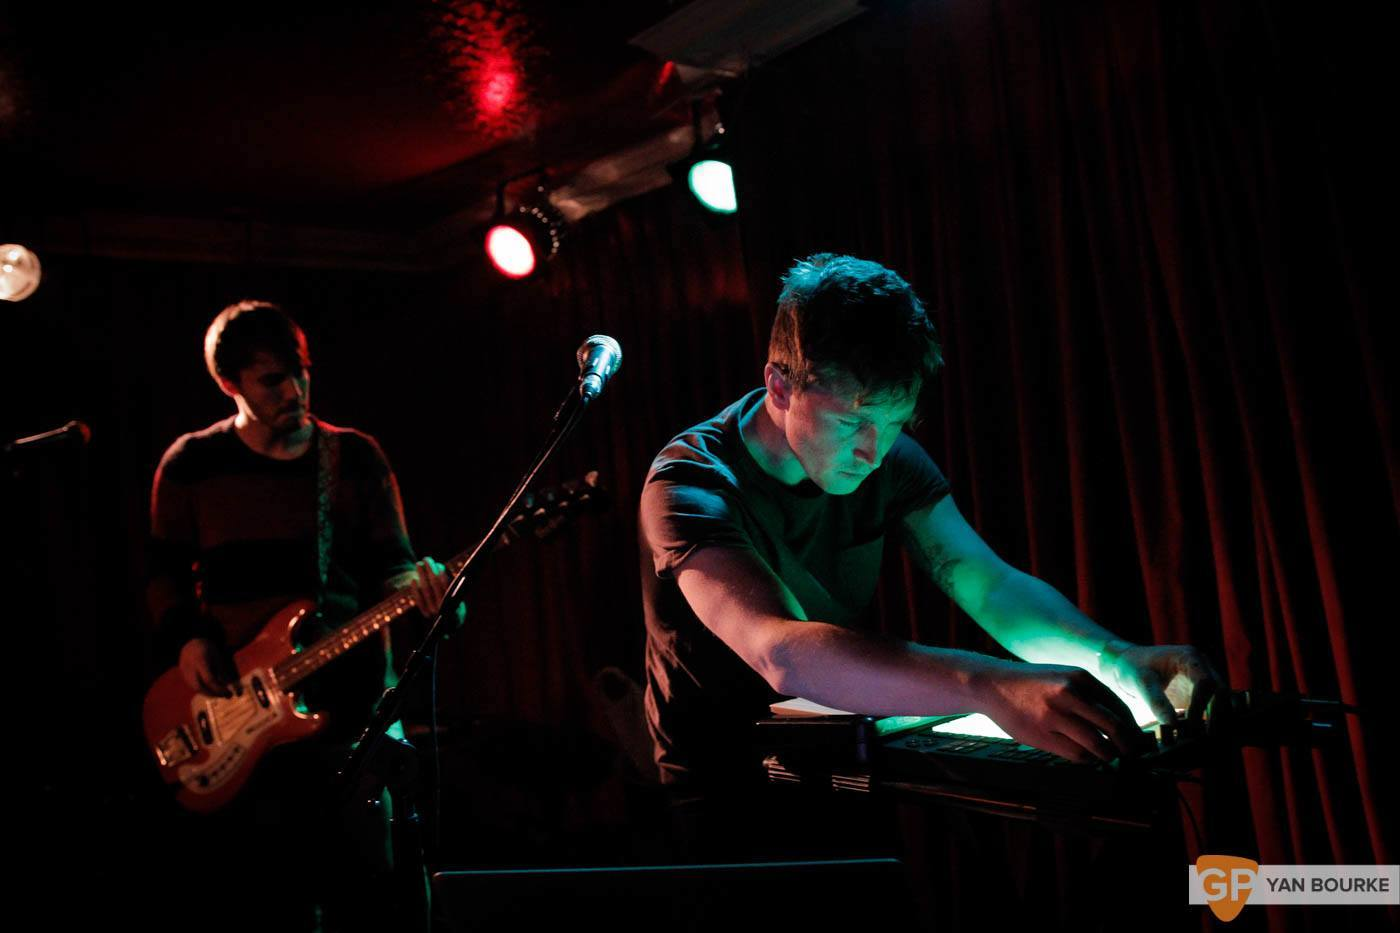 Le Boom Upstairs in Whelan's on 25 October 2015 by Yan Bourke